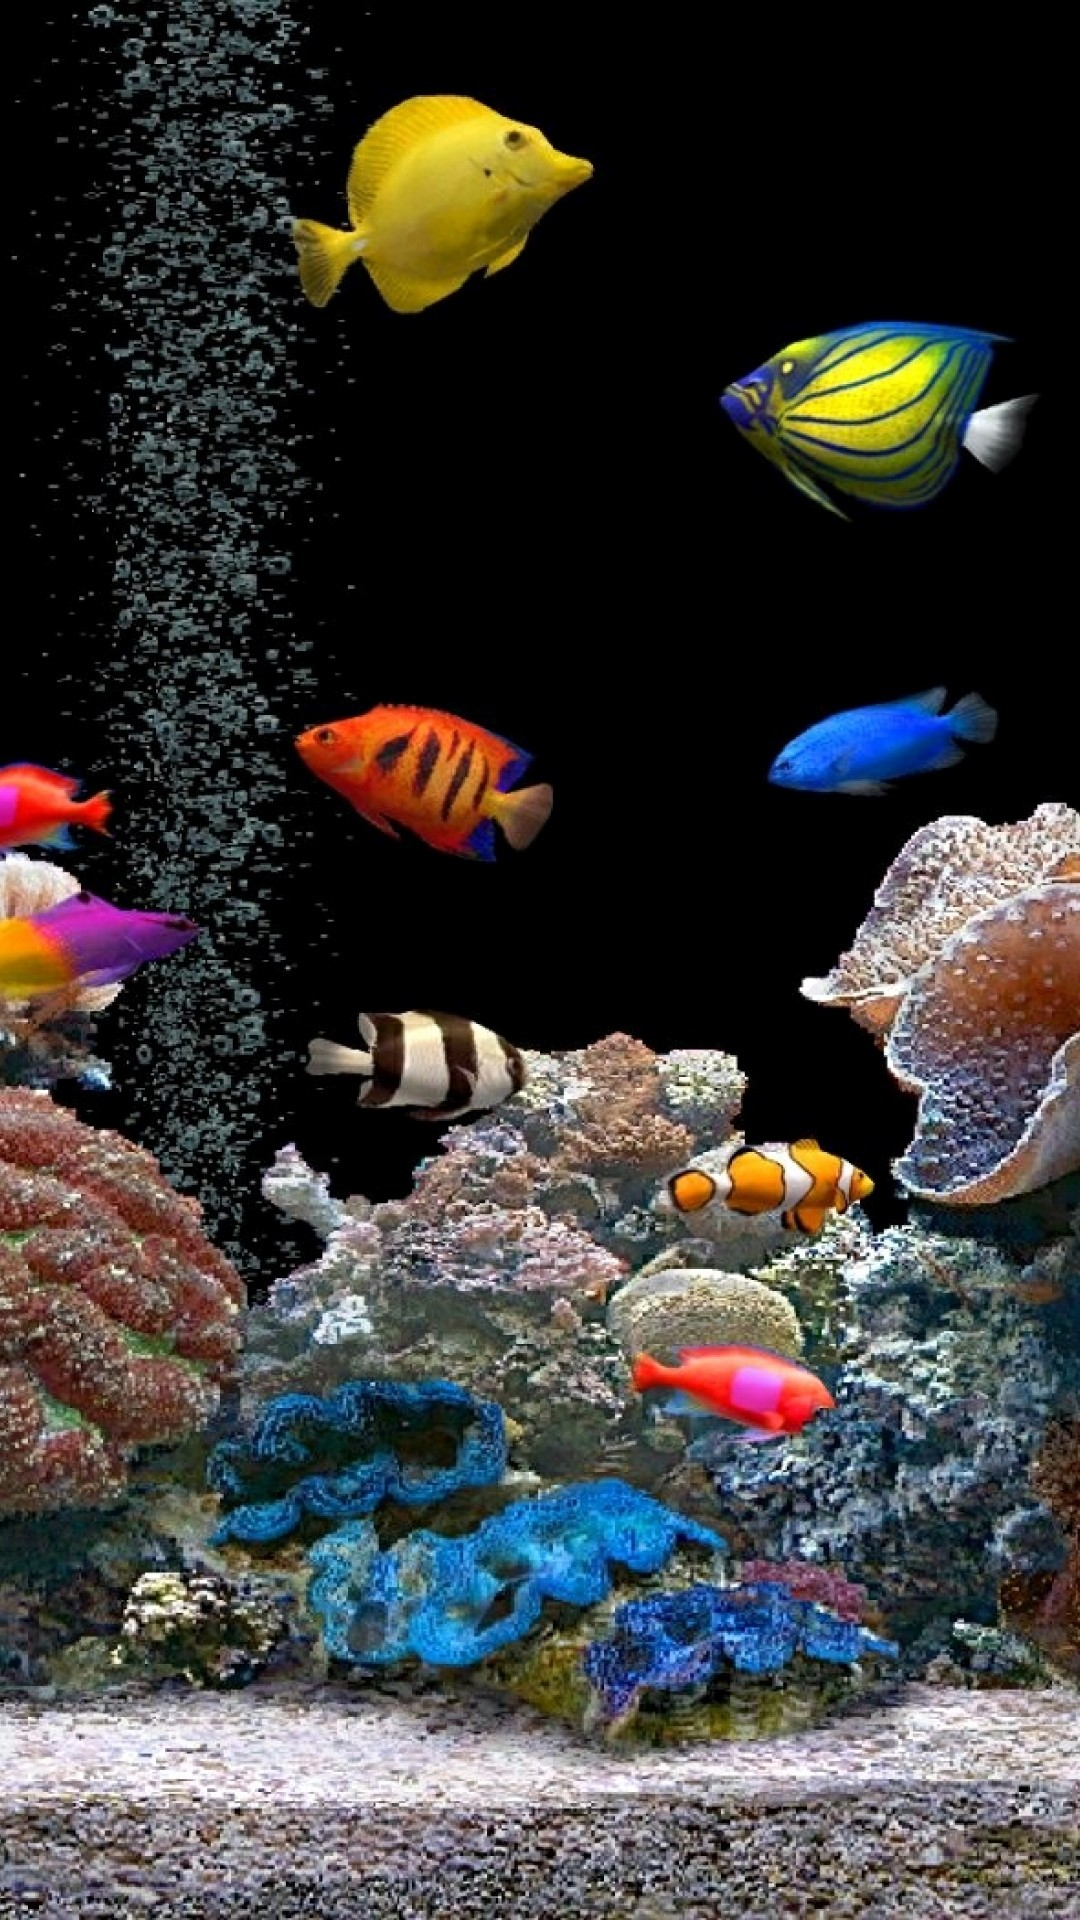 3d fish tank wallpaper 59 images for Live fish tank